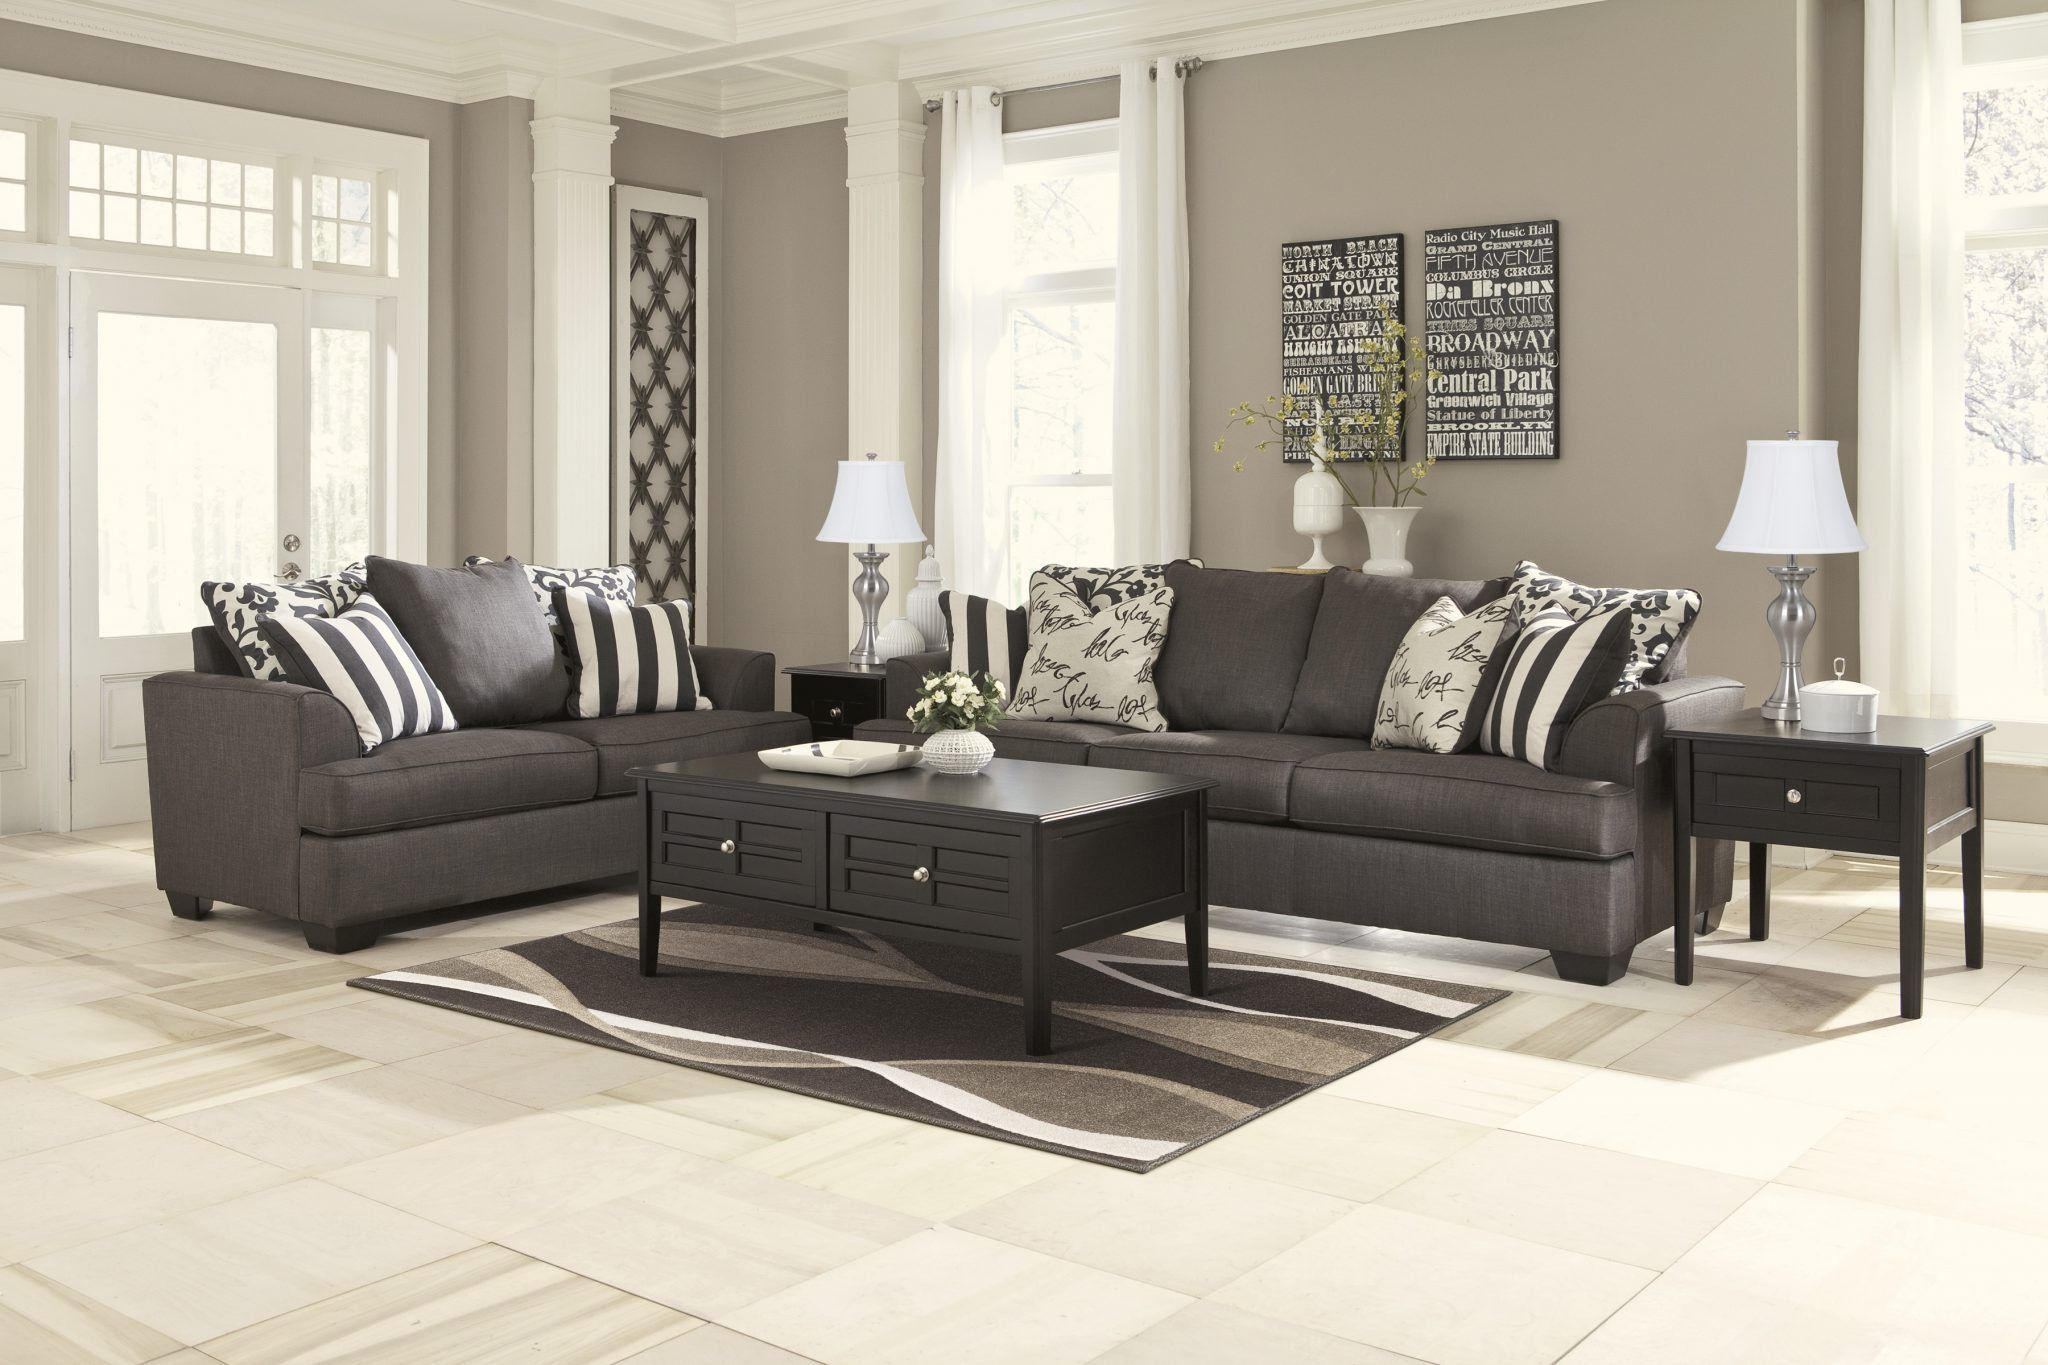 best 3 piece sofa set collection-Incredible 3 Piece sofa Set Online